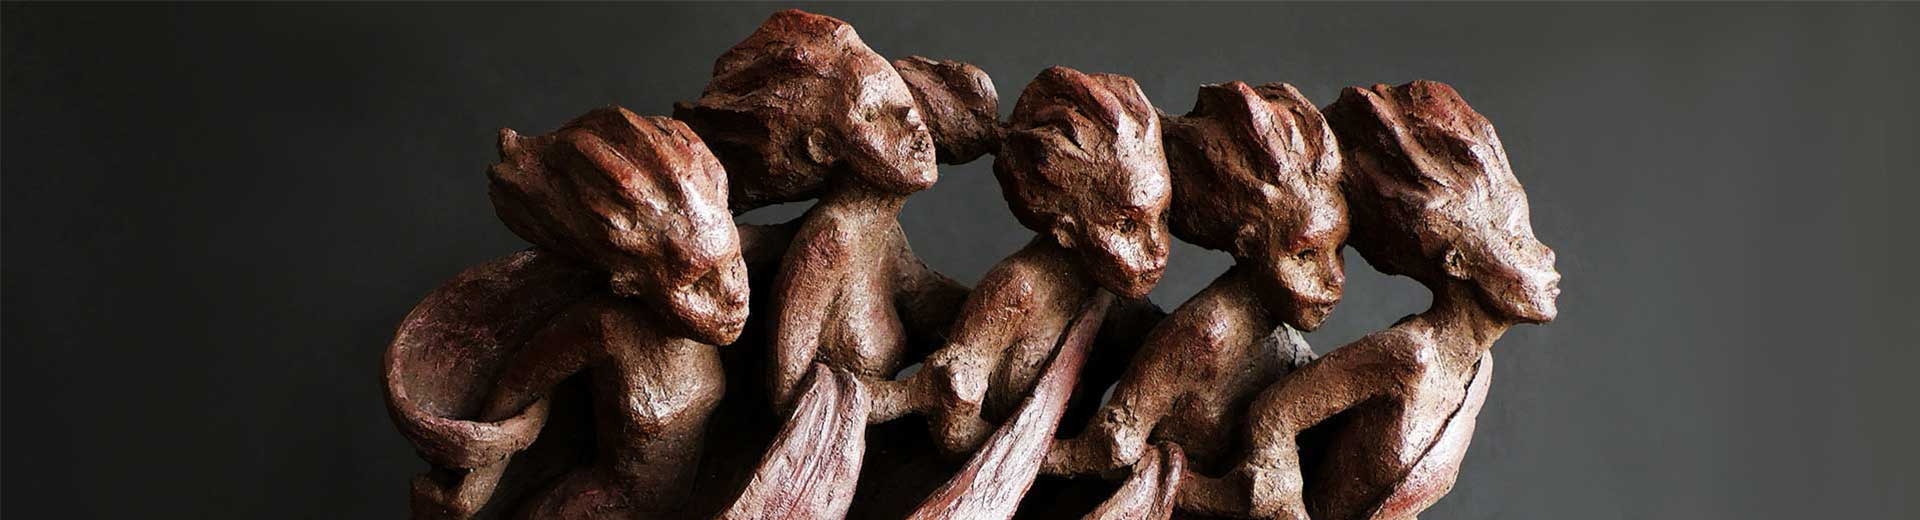 sculpture-marie-therese-tsalapatanis-lavague-ban